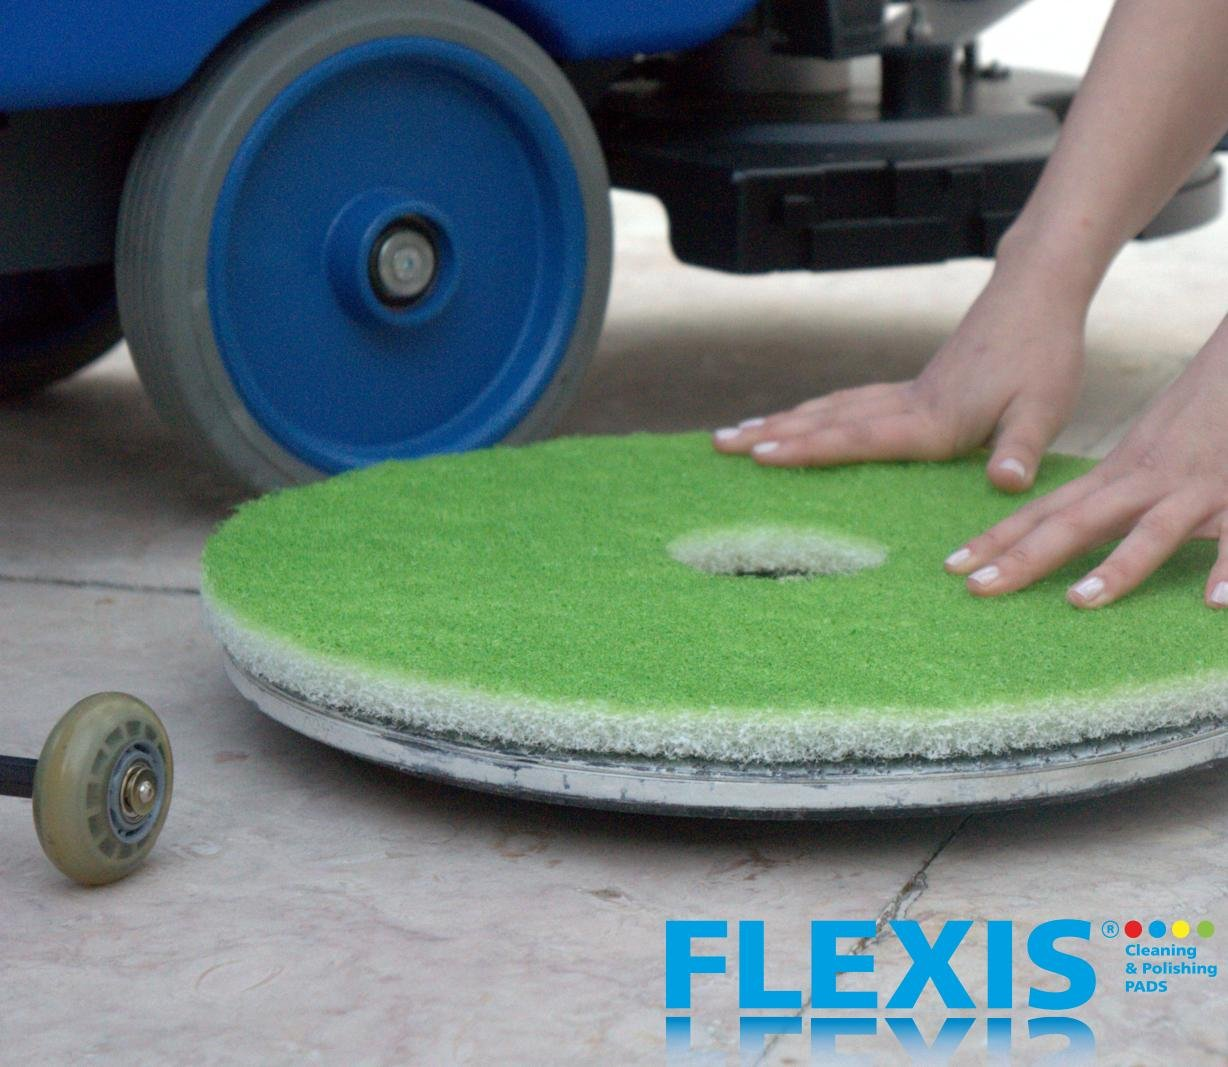 FLEXIS KGS Floor Cleaning & polishing Pads 17 inch, grit 3000 - Green (2 Pack) by KGS (Image #4)